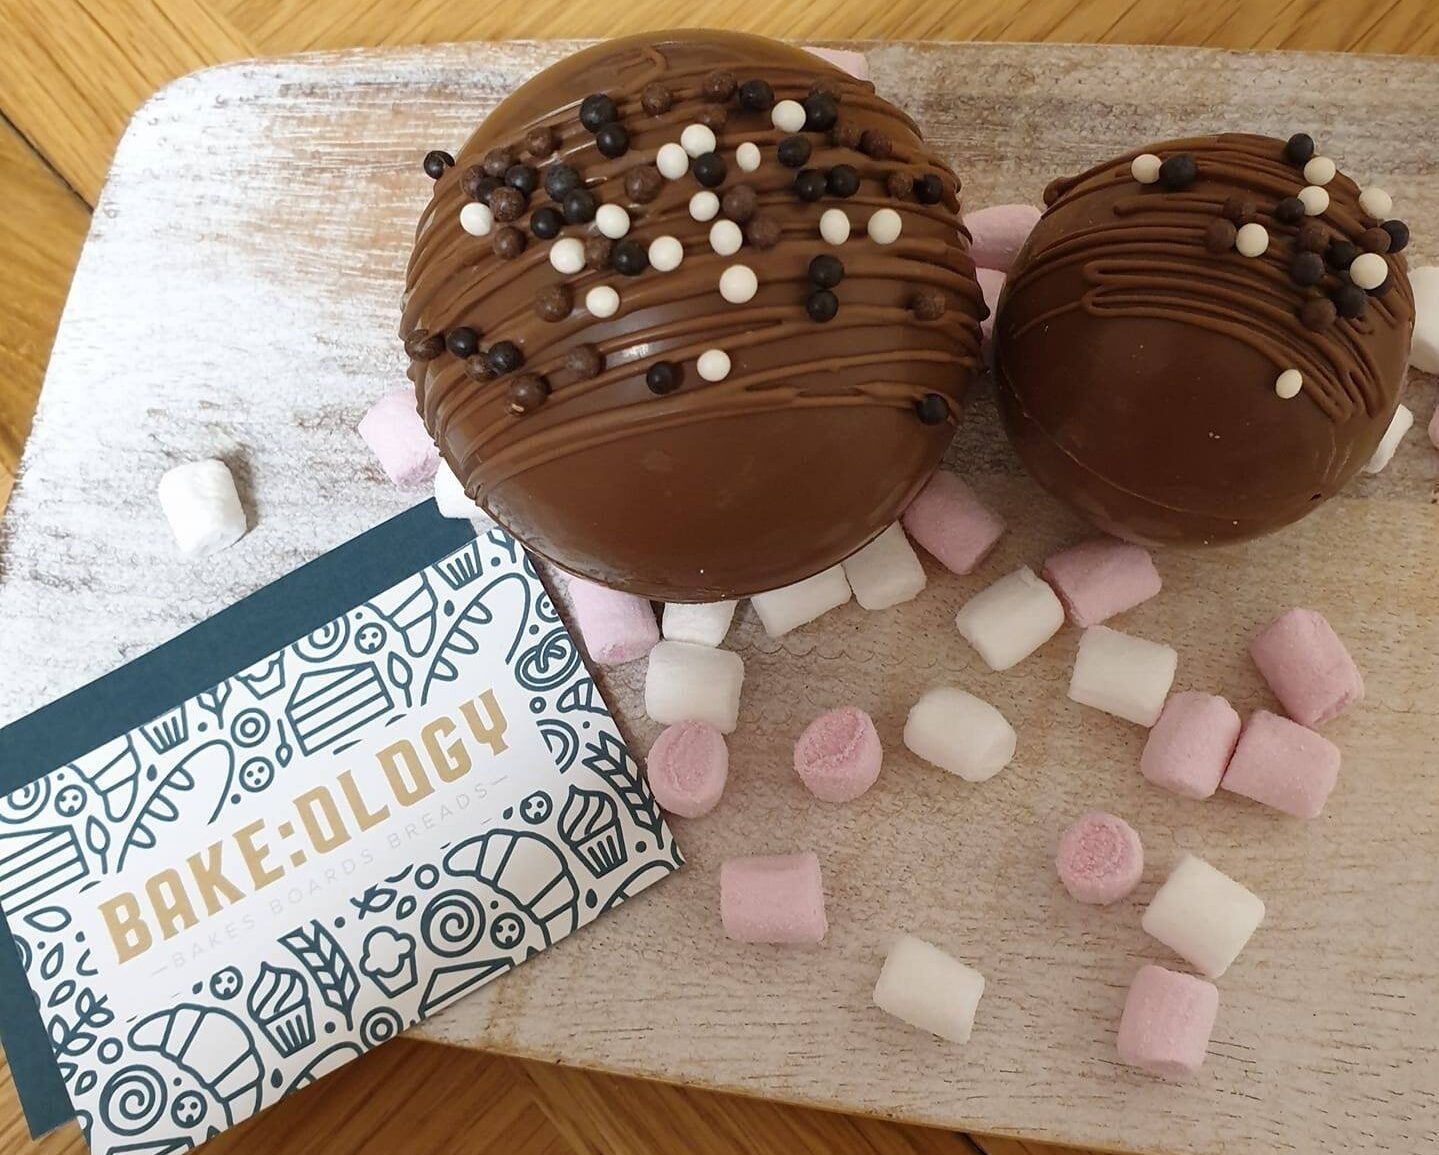 Baking company sends hilarious warning after woman mistakes hot 'chocolate bomb' for bath bomb, The Manc